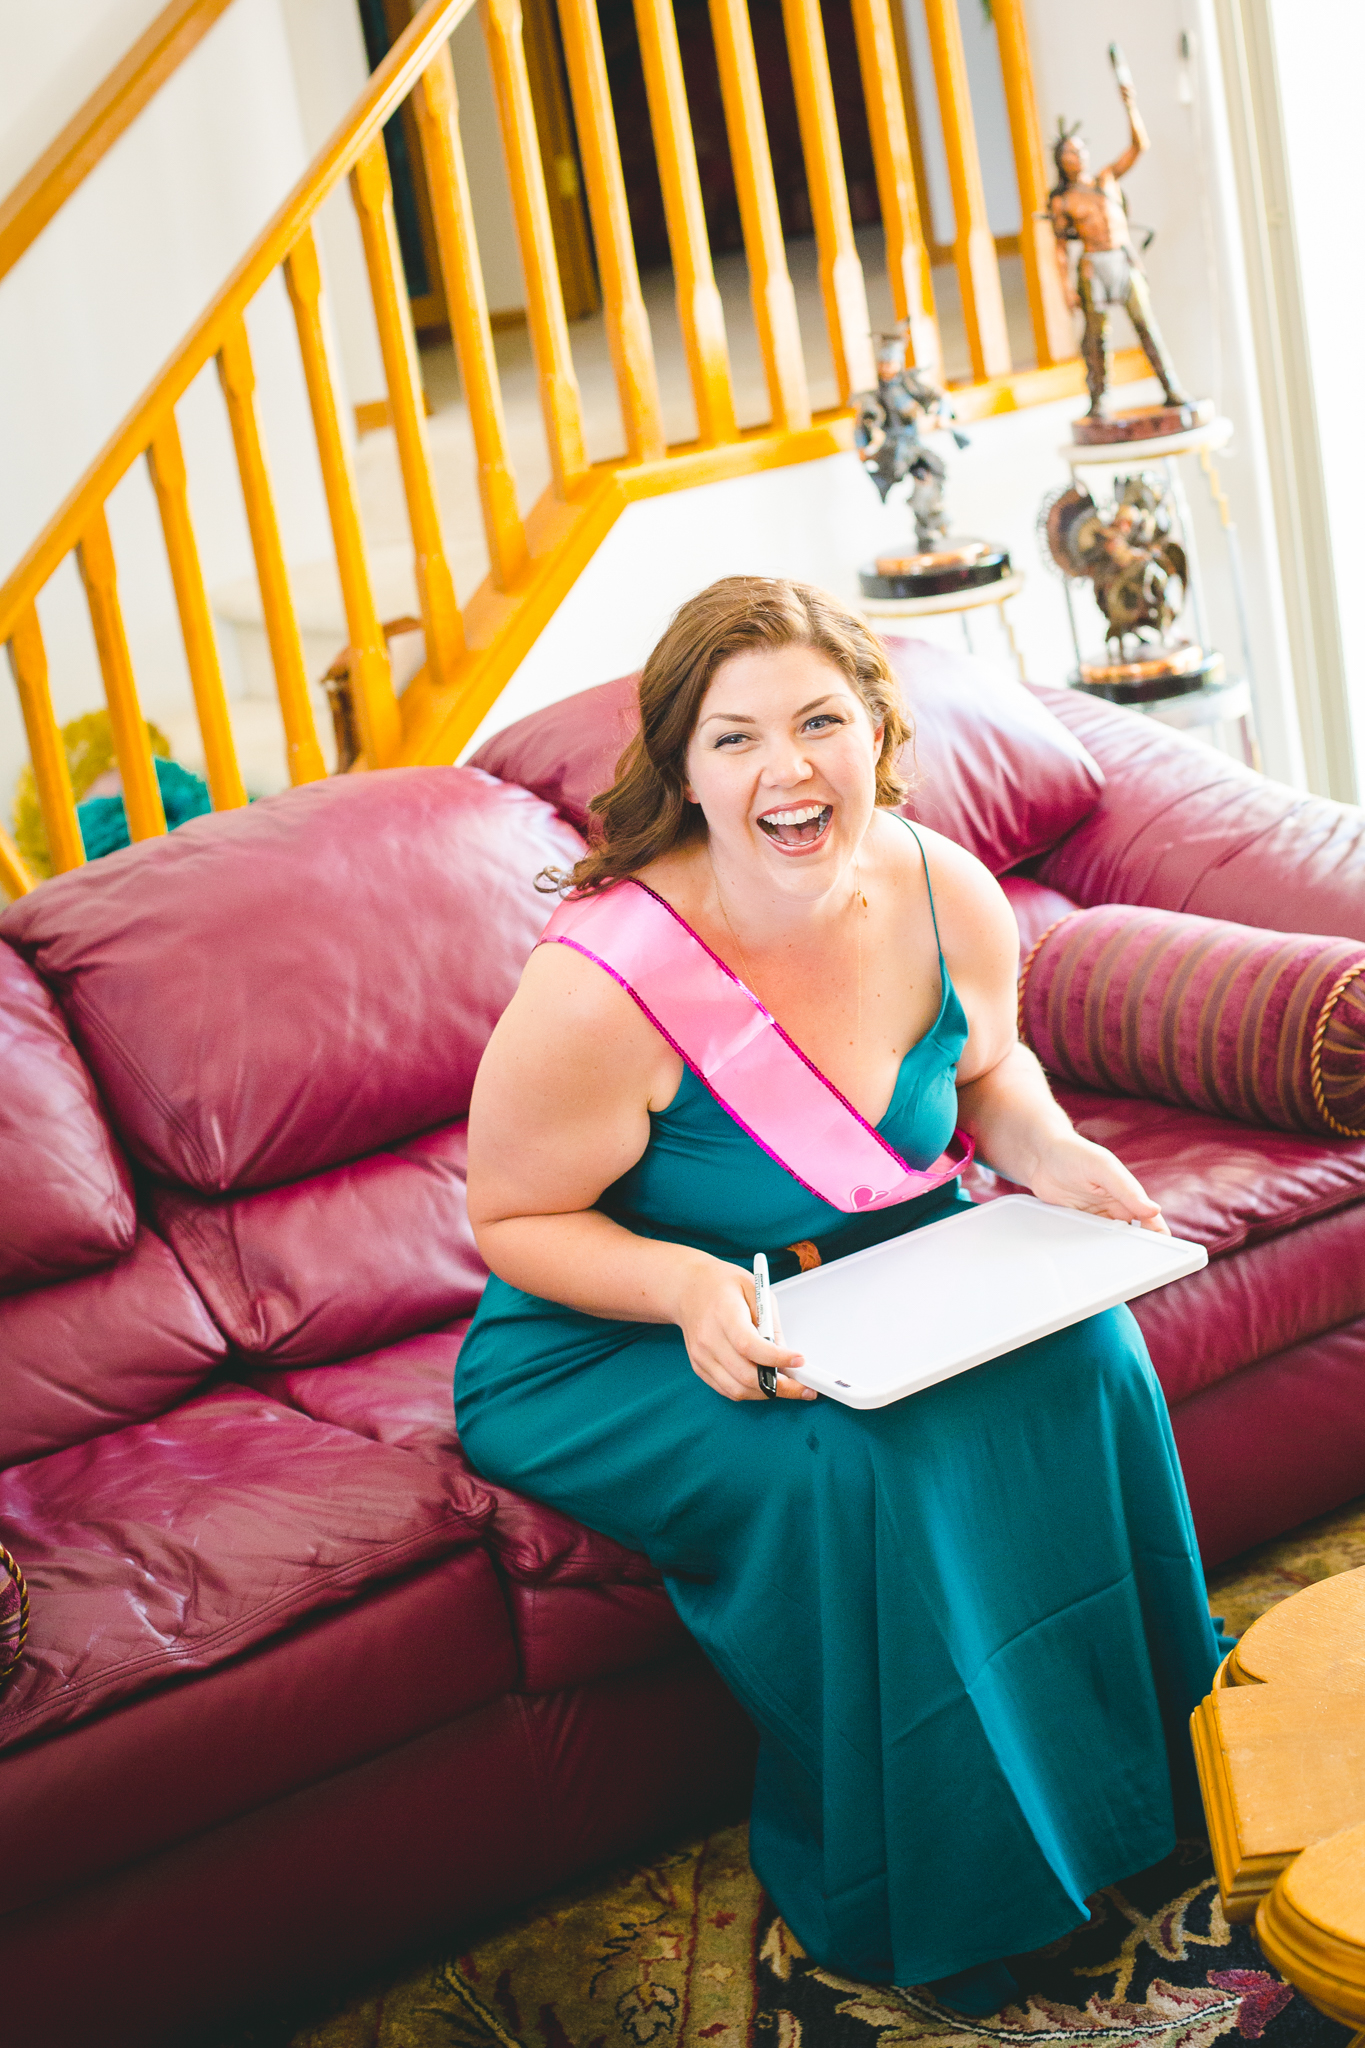 phoenix-photography-tiff-bridal-shower-reaction